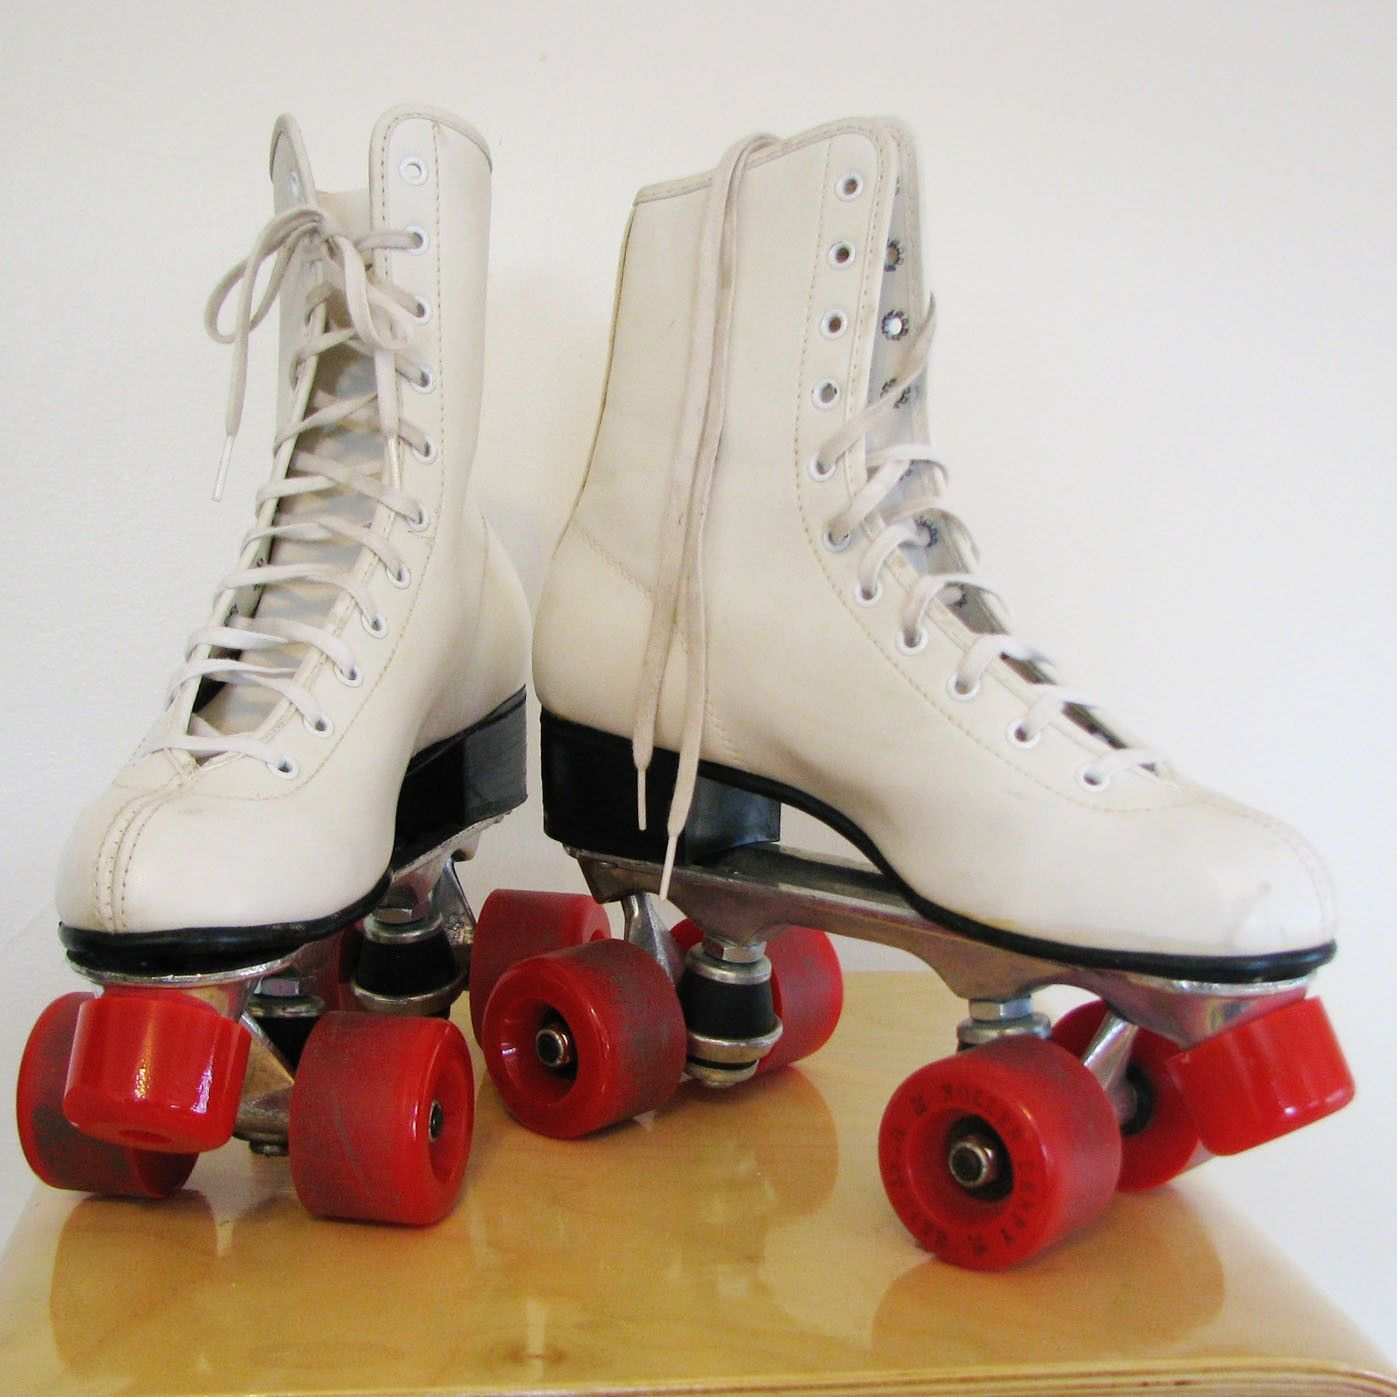 Roller skates vintage - Not Technically A Product But I Do Love Retro Roller Skates